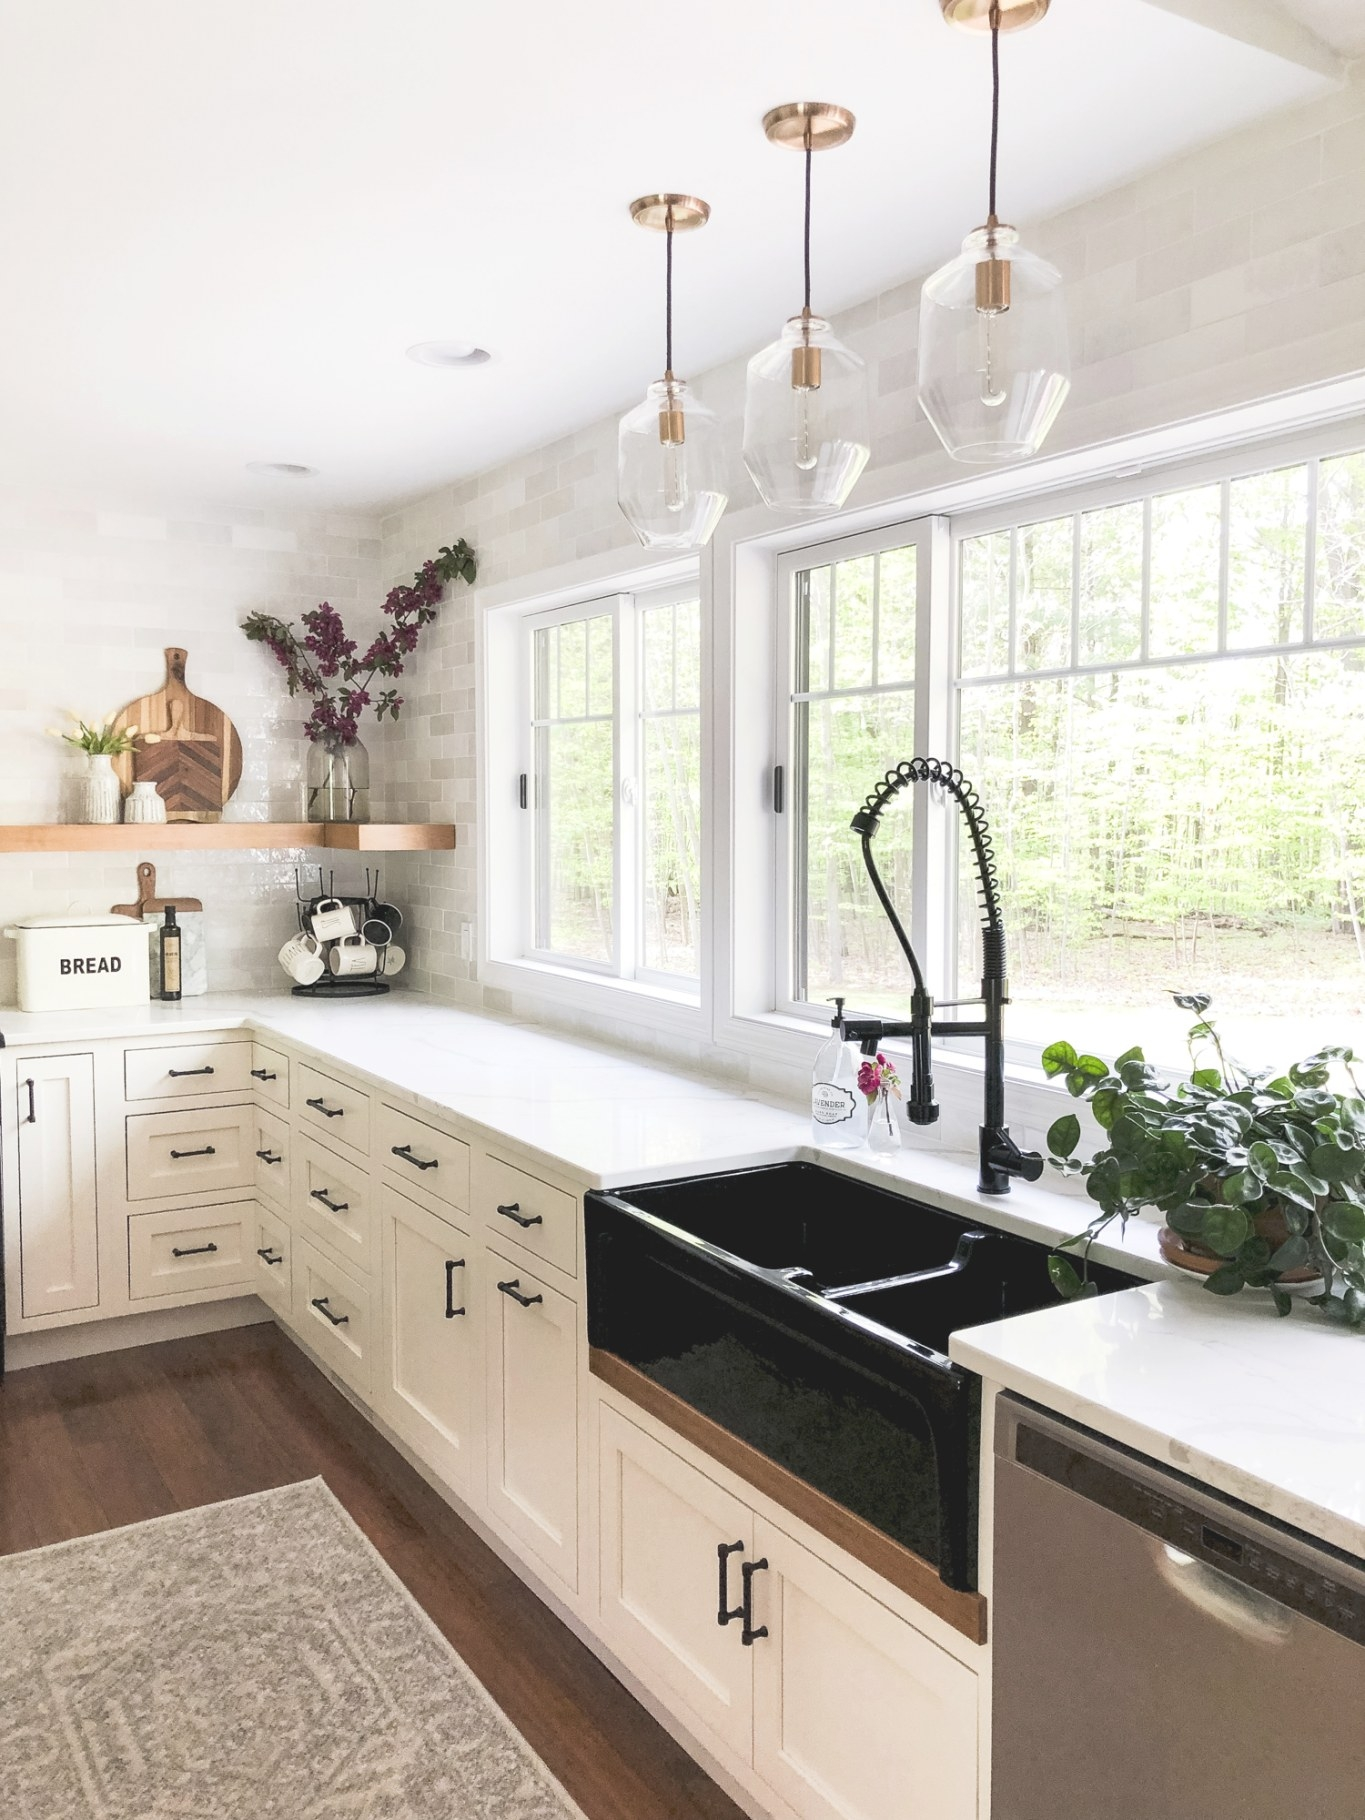 Designing A Modern Farmhouse Kitchen With A Black inside Small Modern Farmhouse Kitchen